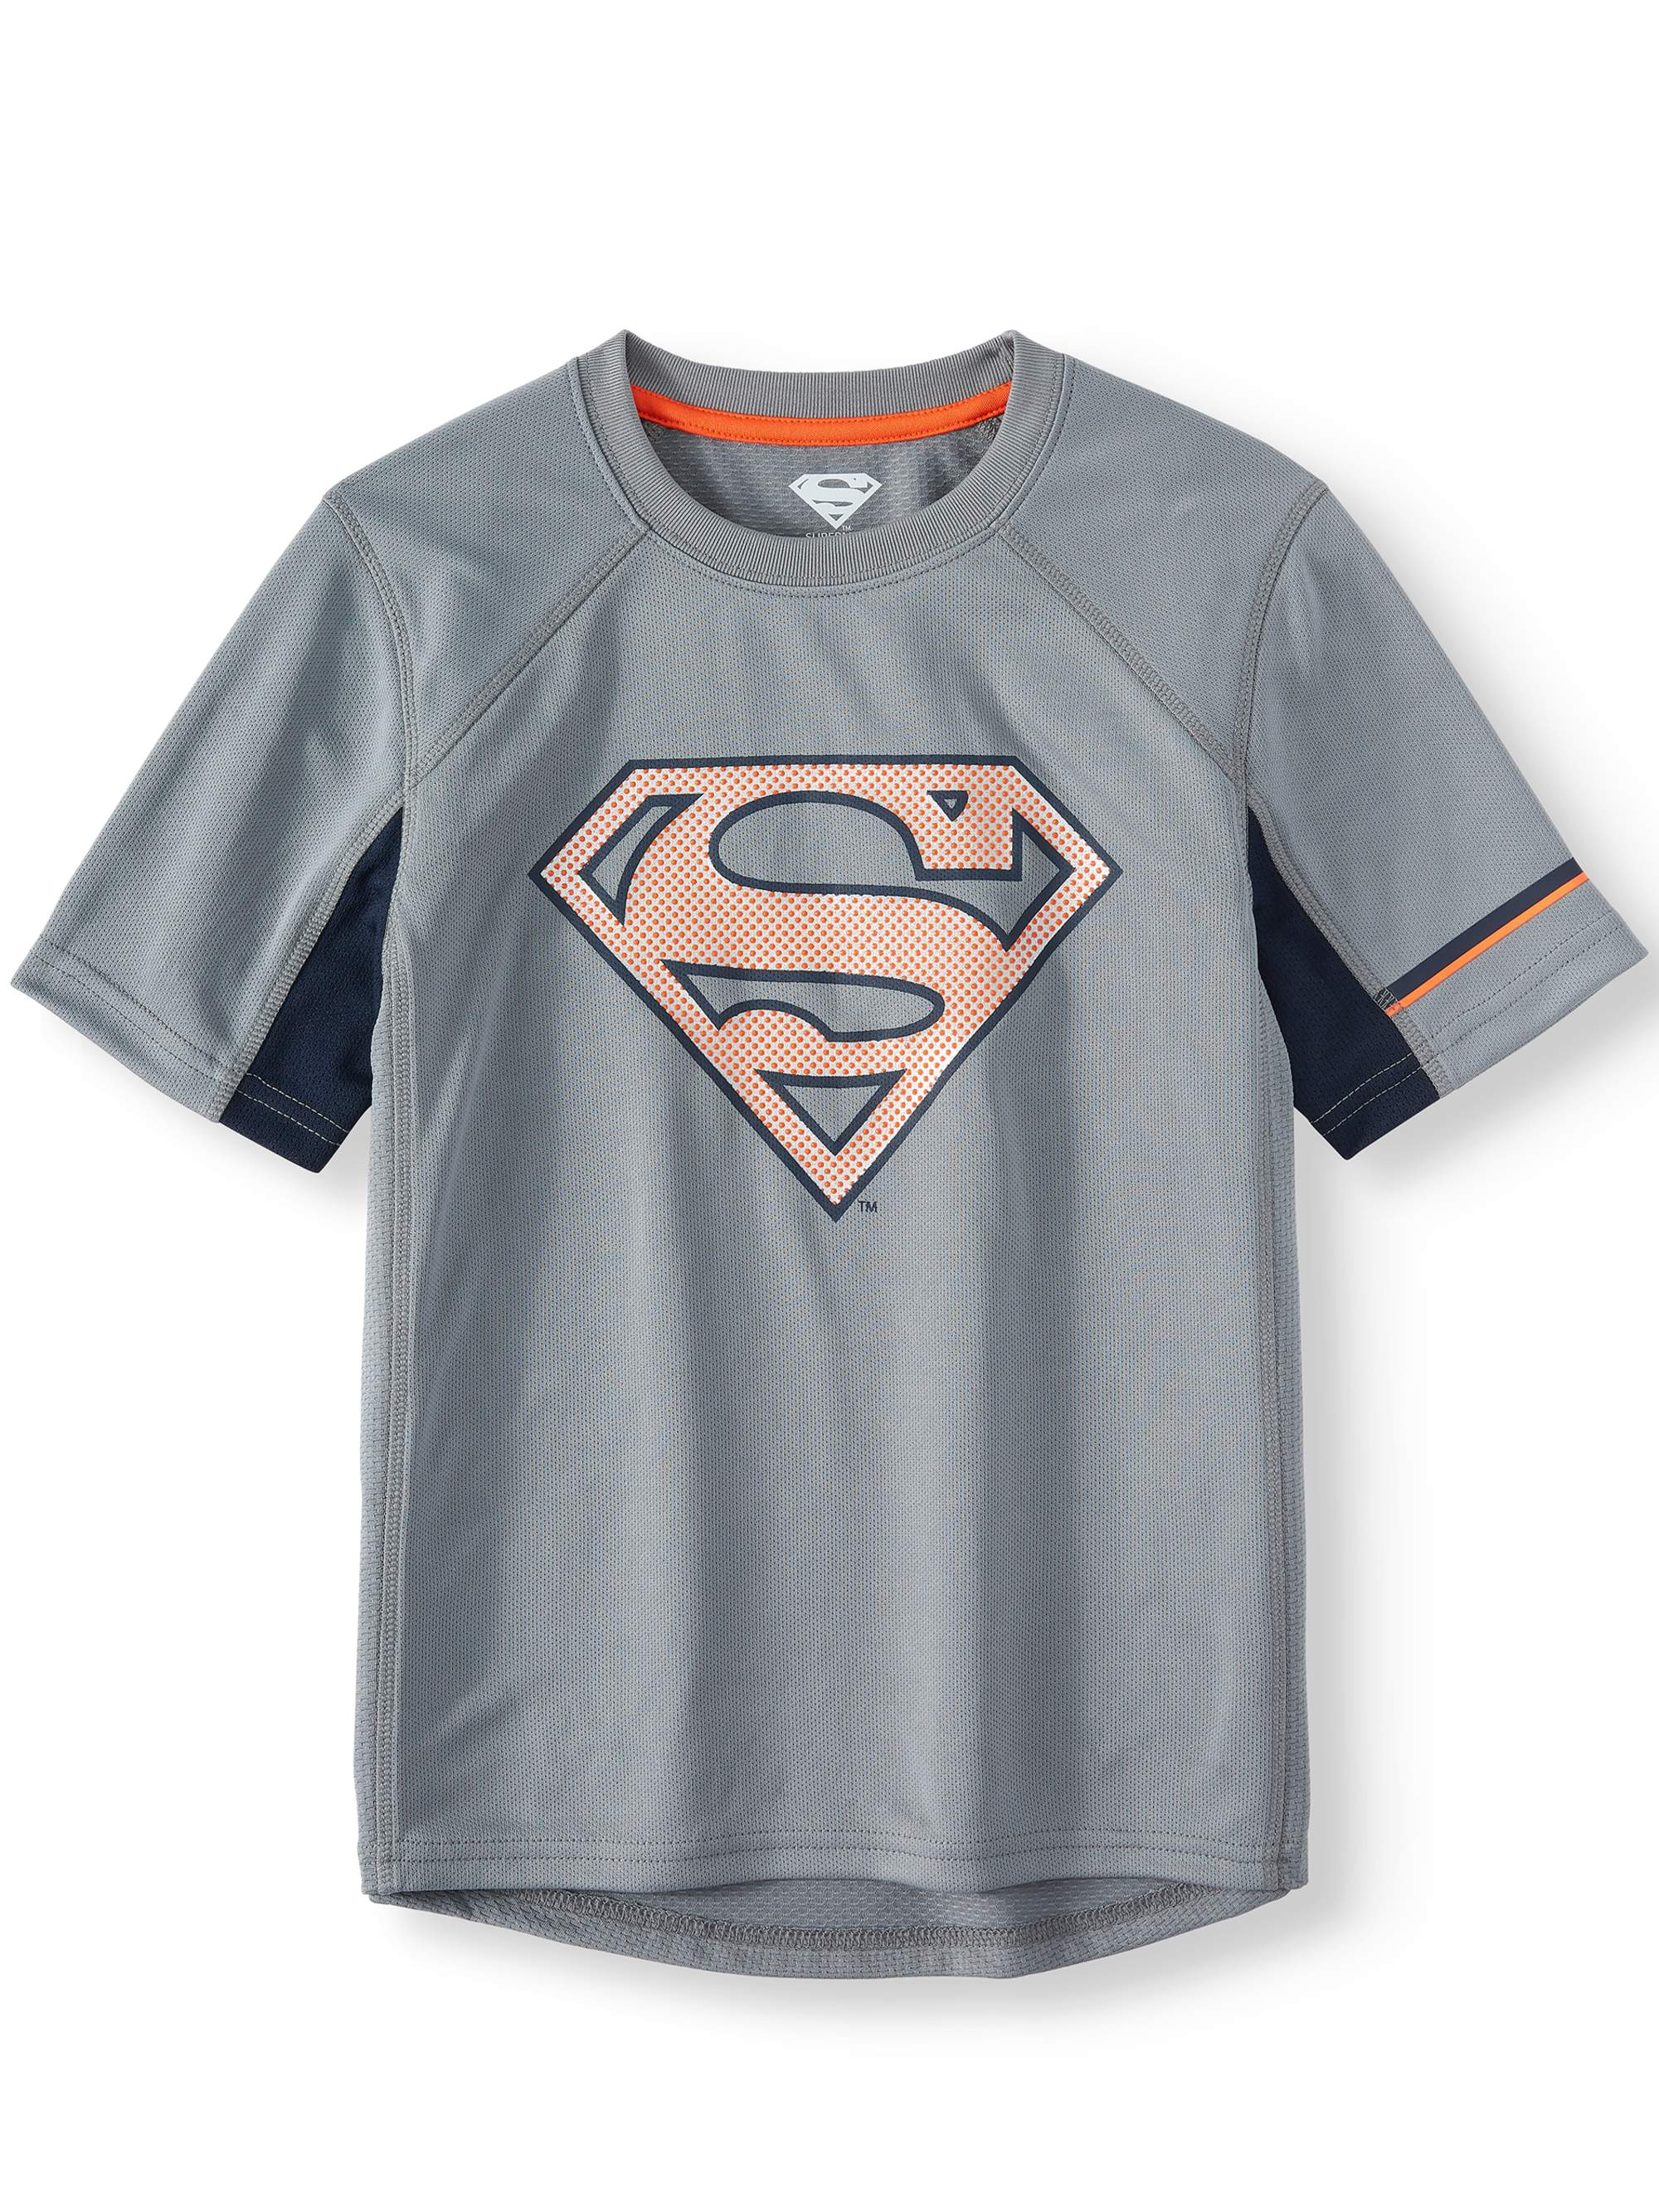 Short Sleeve Performance Tee Shirt (Little Boys & Big Boys)